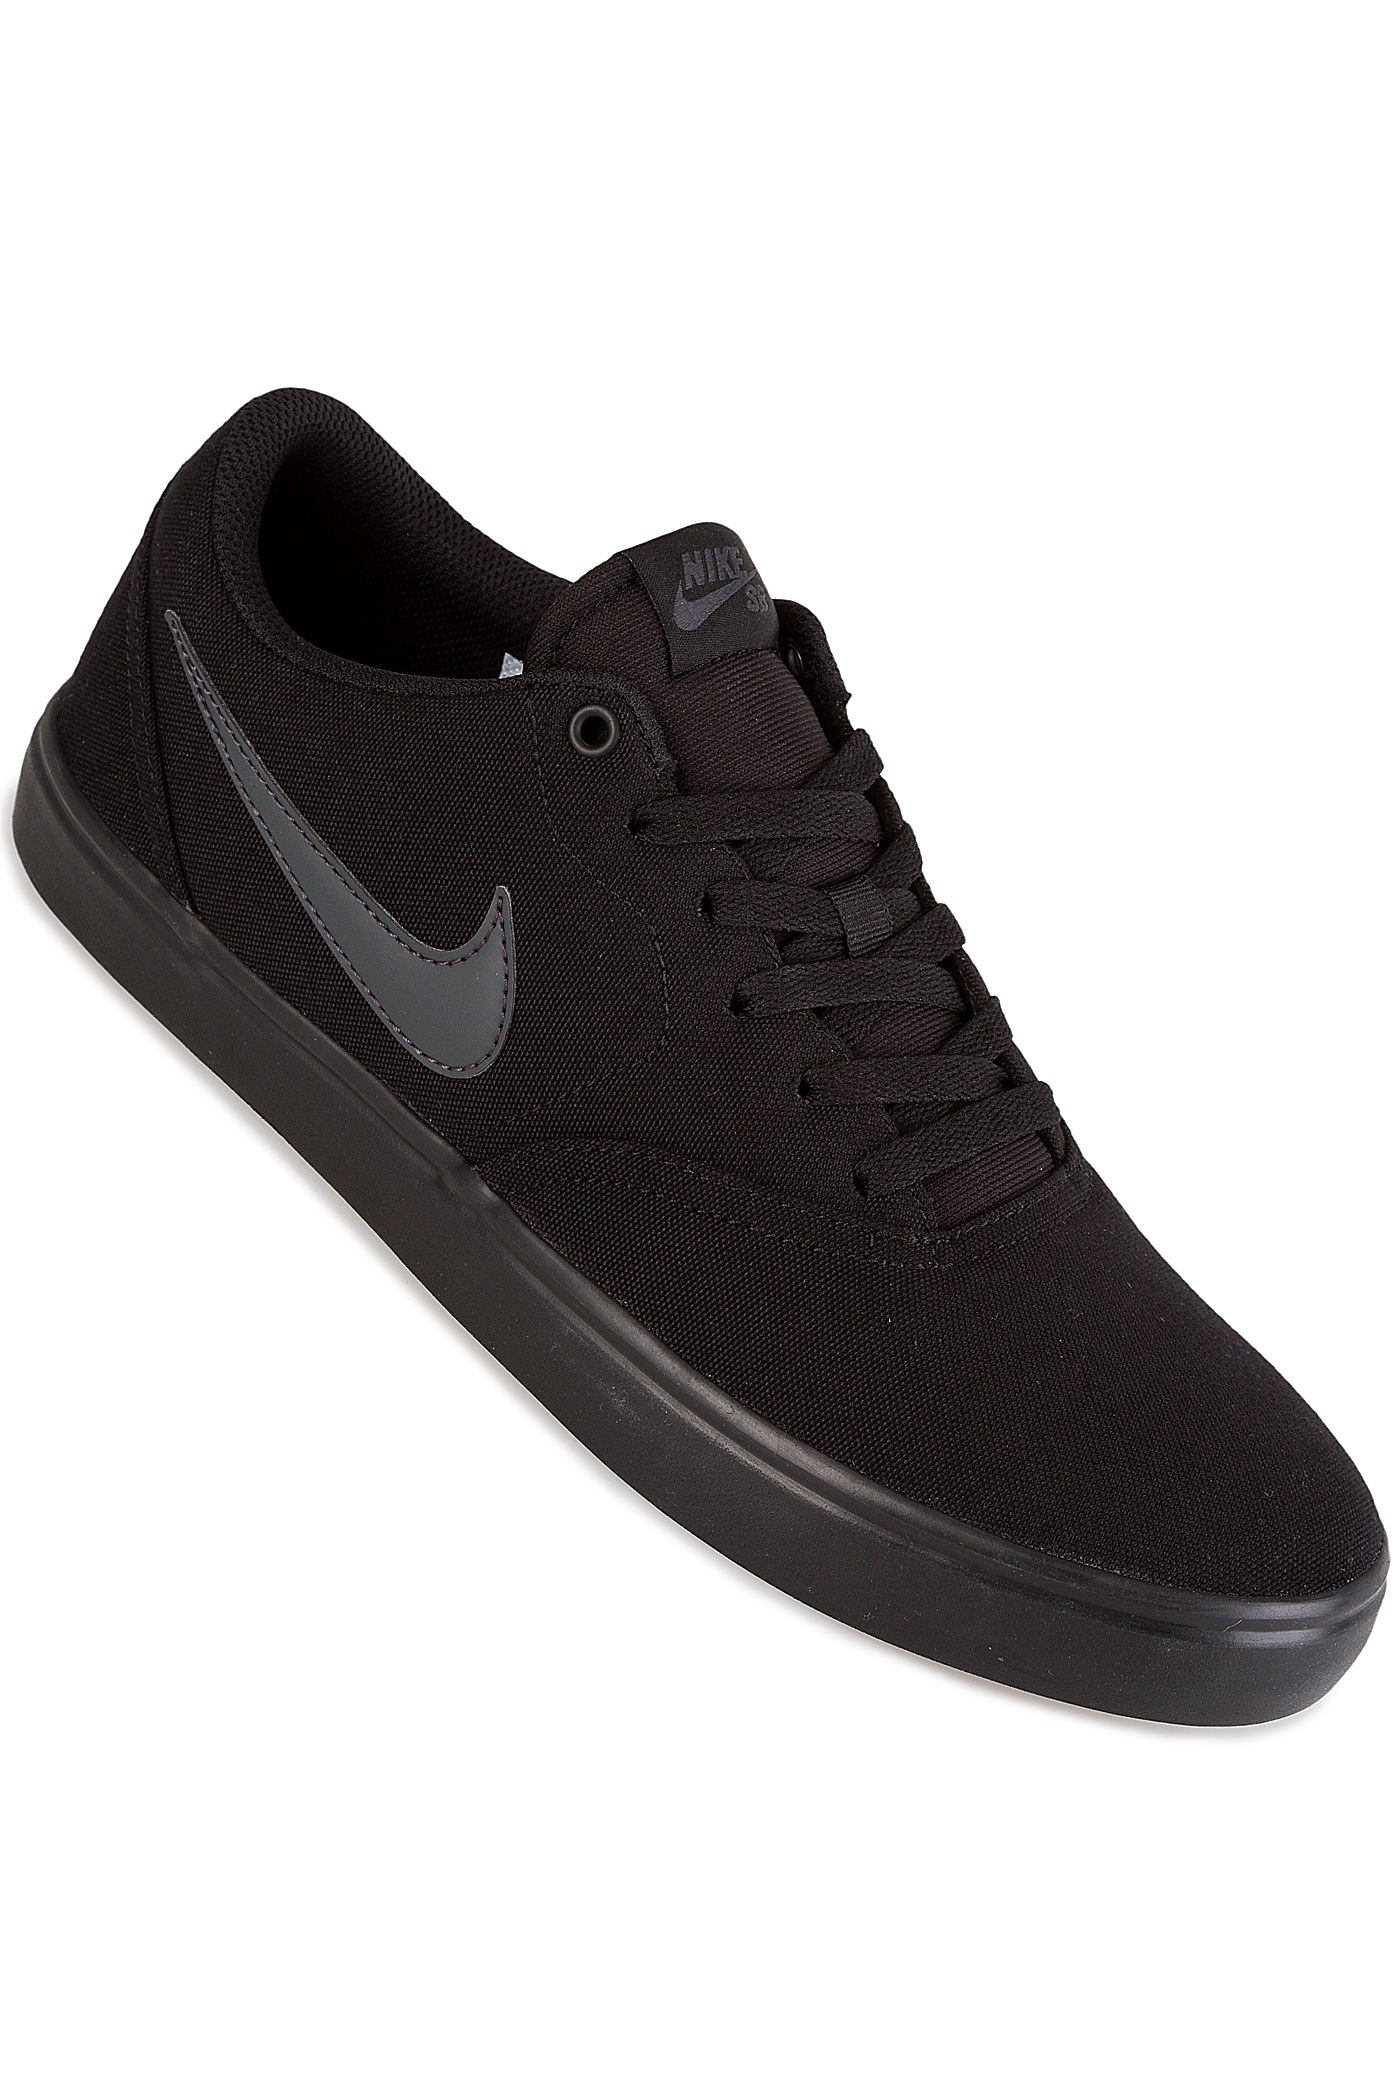 Nike Sb Check Solarsoft Canvas Shoes Black Anthracite